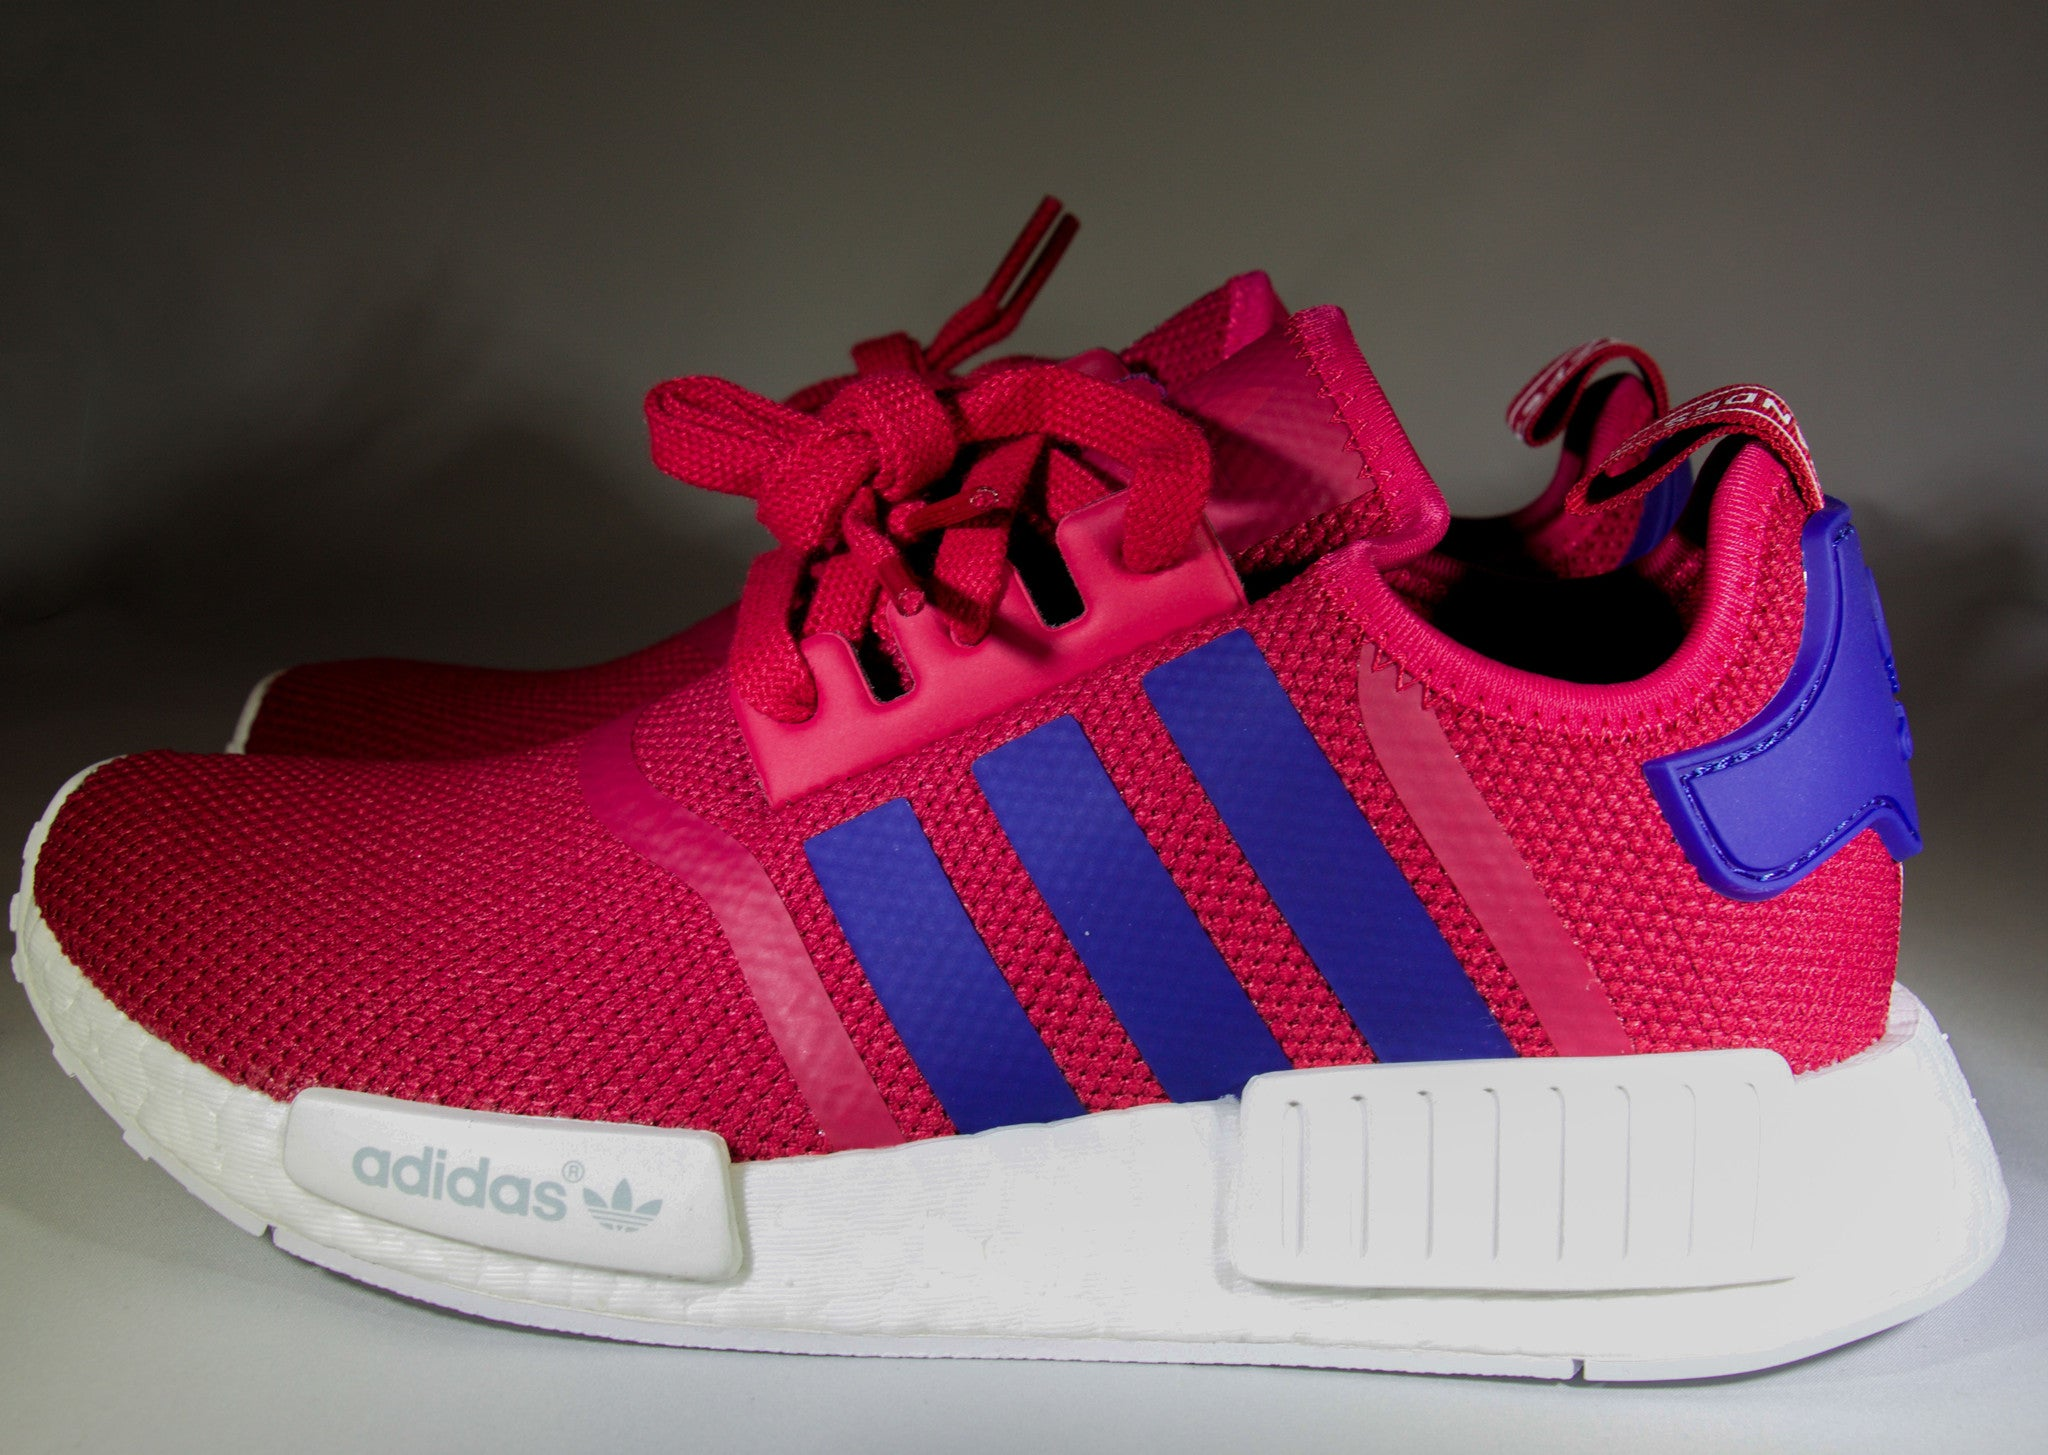 separation shoes a8e22 3ef77 Adidas NMD R1 GS Womens PinkPurple - 1s0s5oles